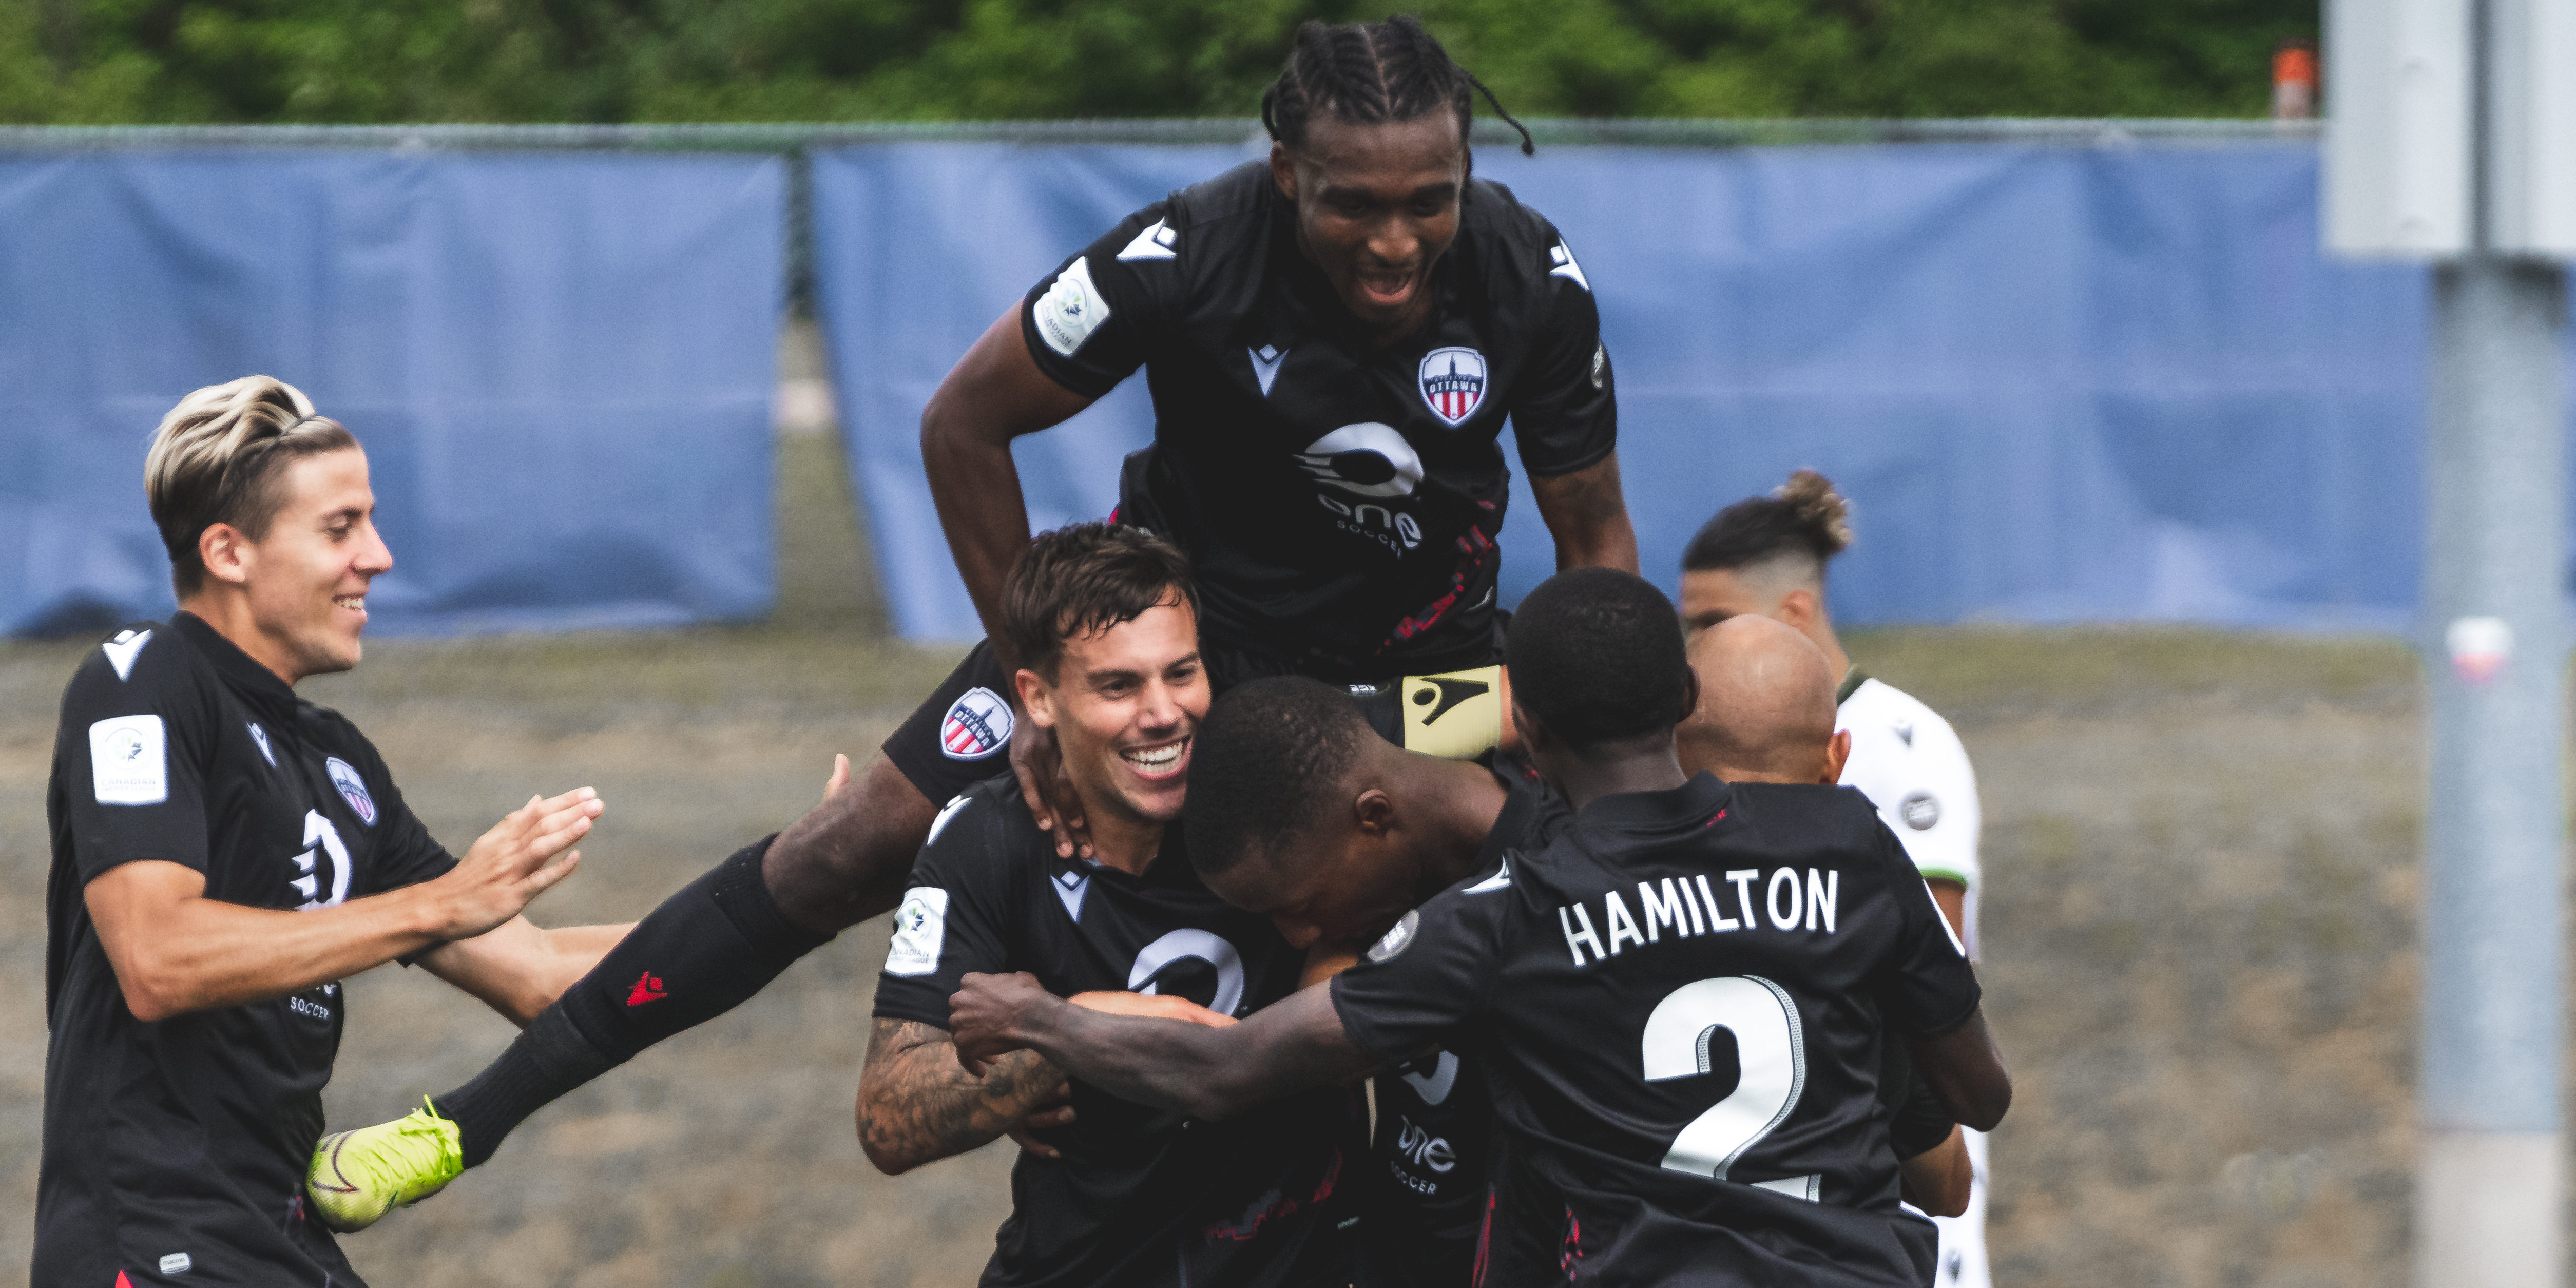 Atlético Ottawa players celebrate a goal against York9 FC. (Photo: CPL / Chant Photography)